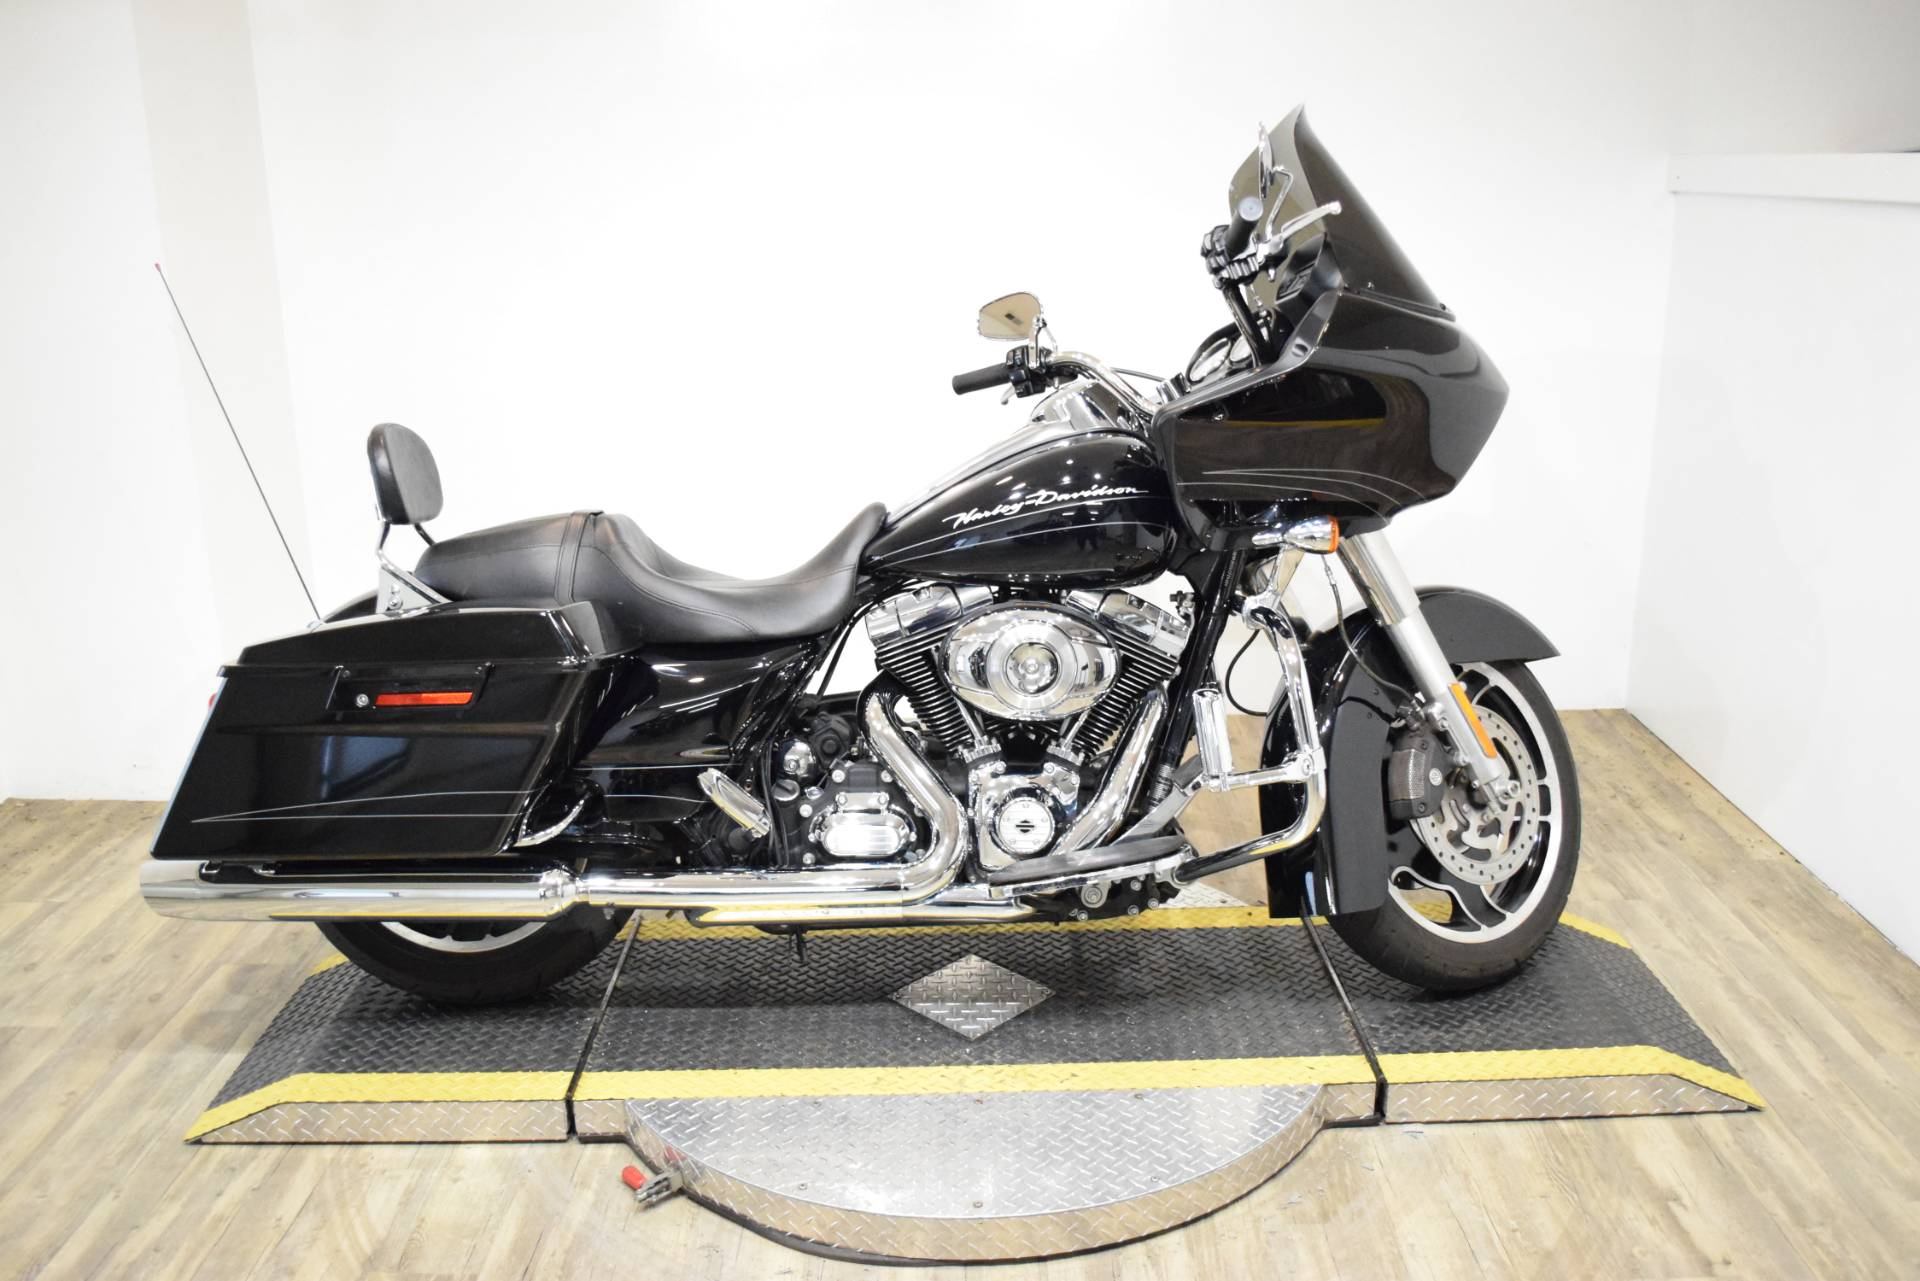 2013 Harley-Davidson Road Glide® Custom in Wauconda, Illinois - Photo 1